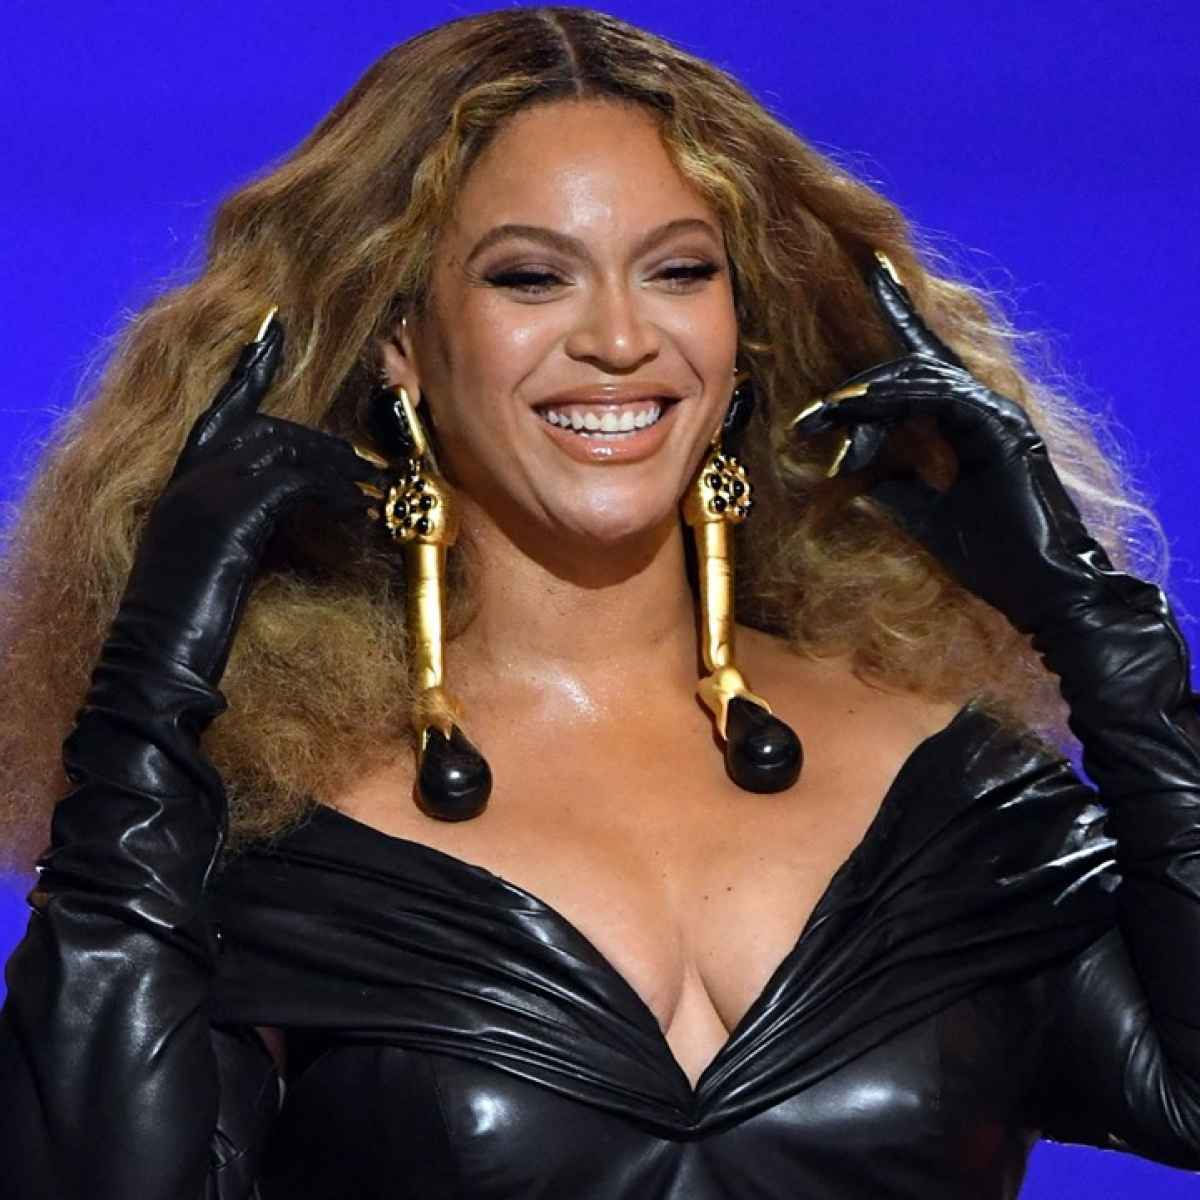 'I wanted to celebrate Black queens and kings': Watch Beyonce's heartfelt speech at Grammys 2021